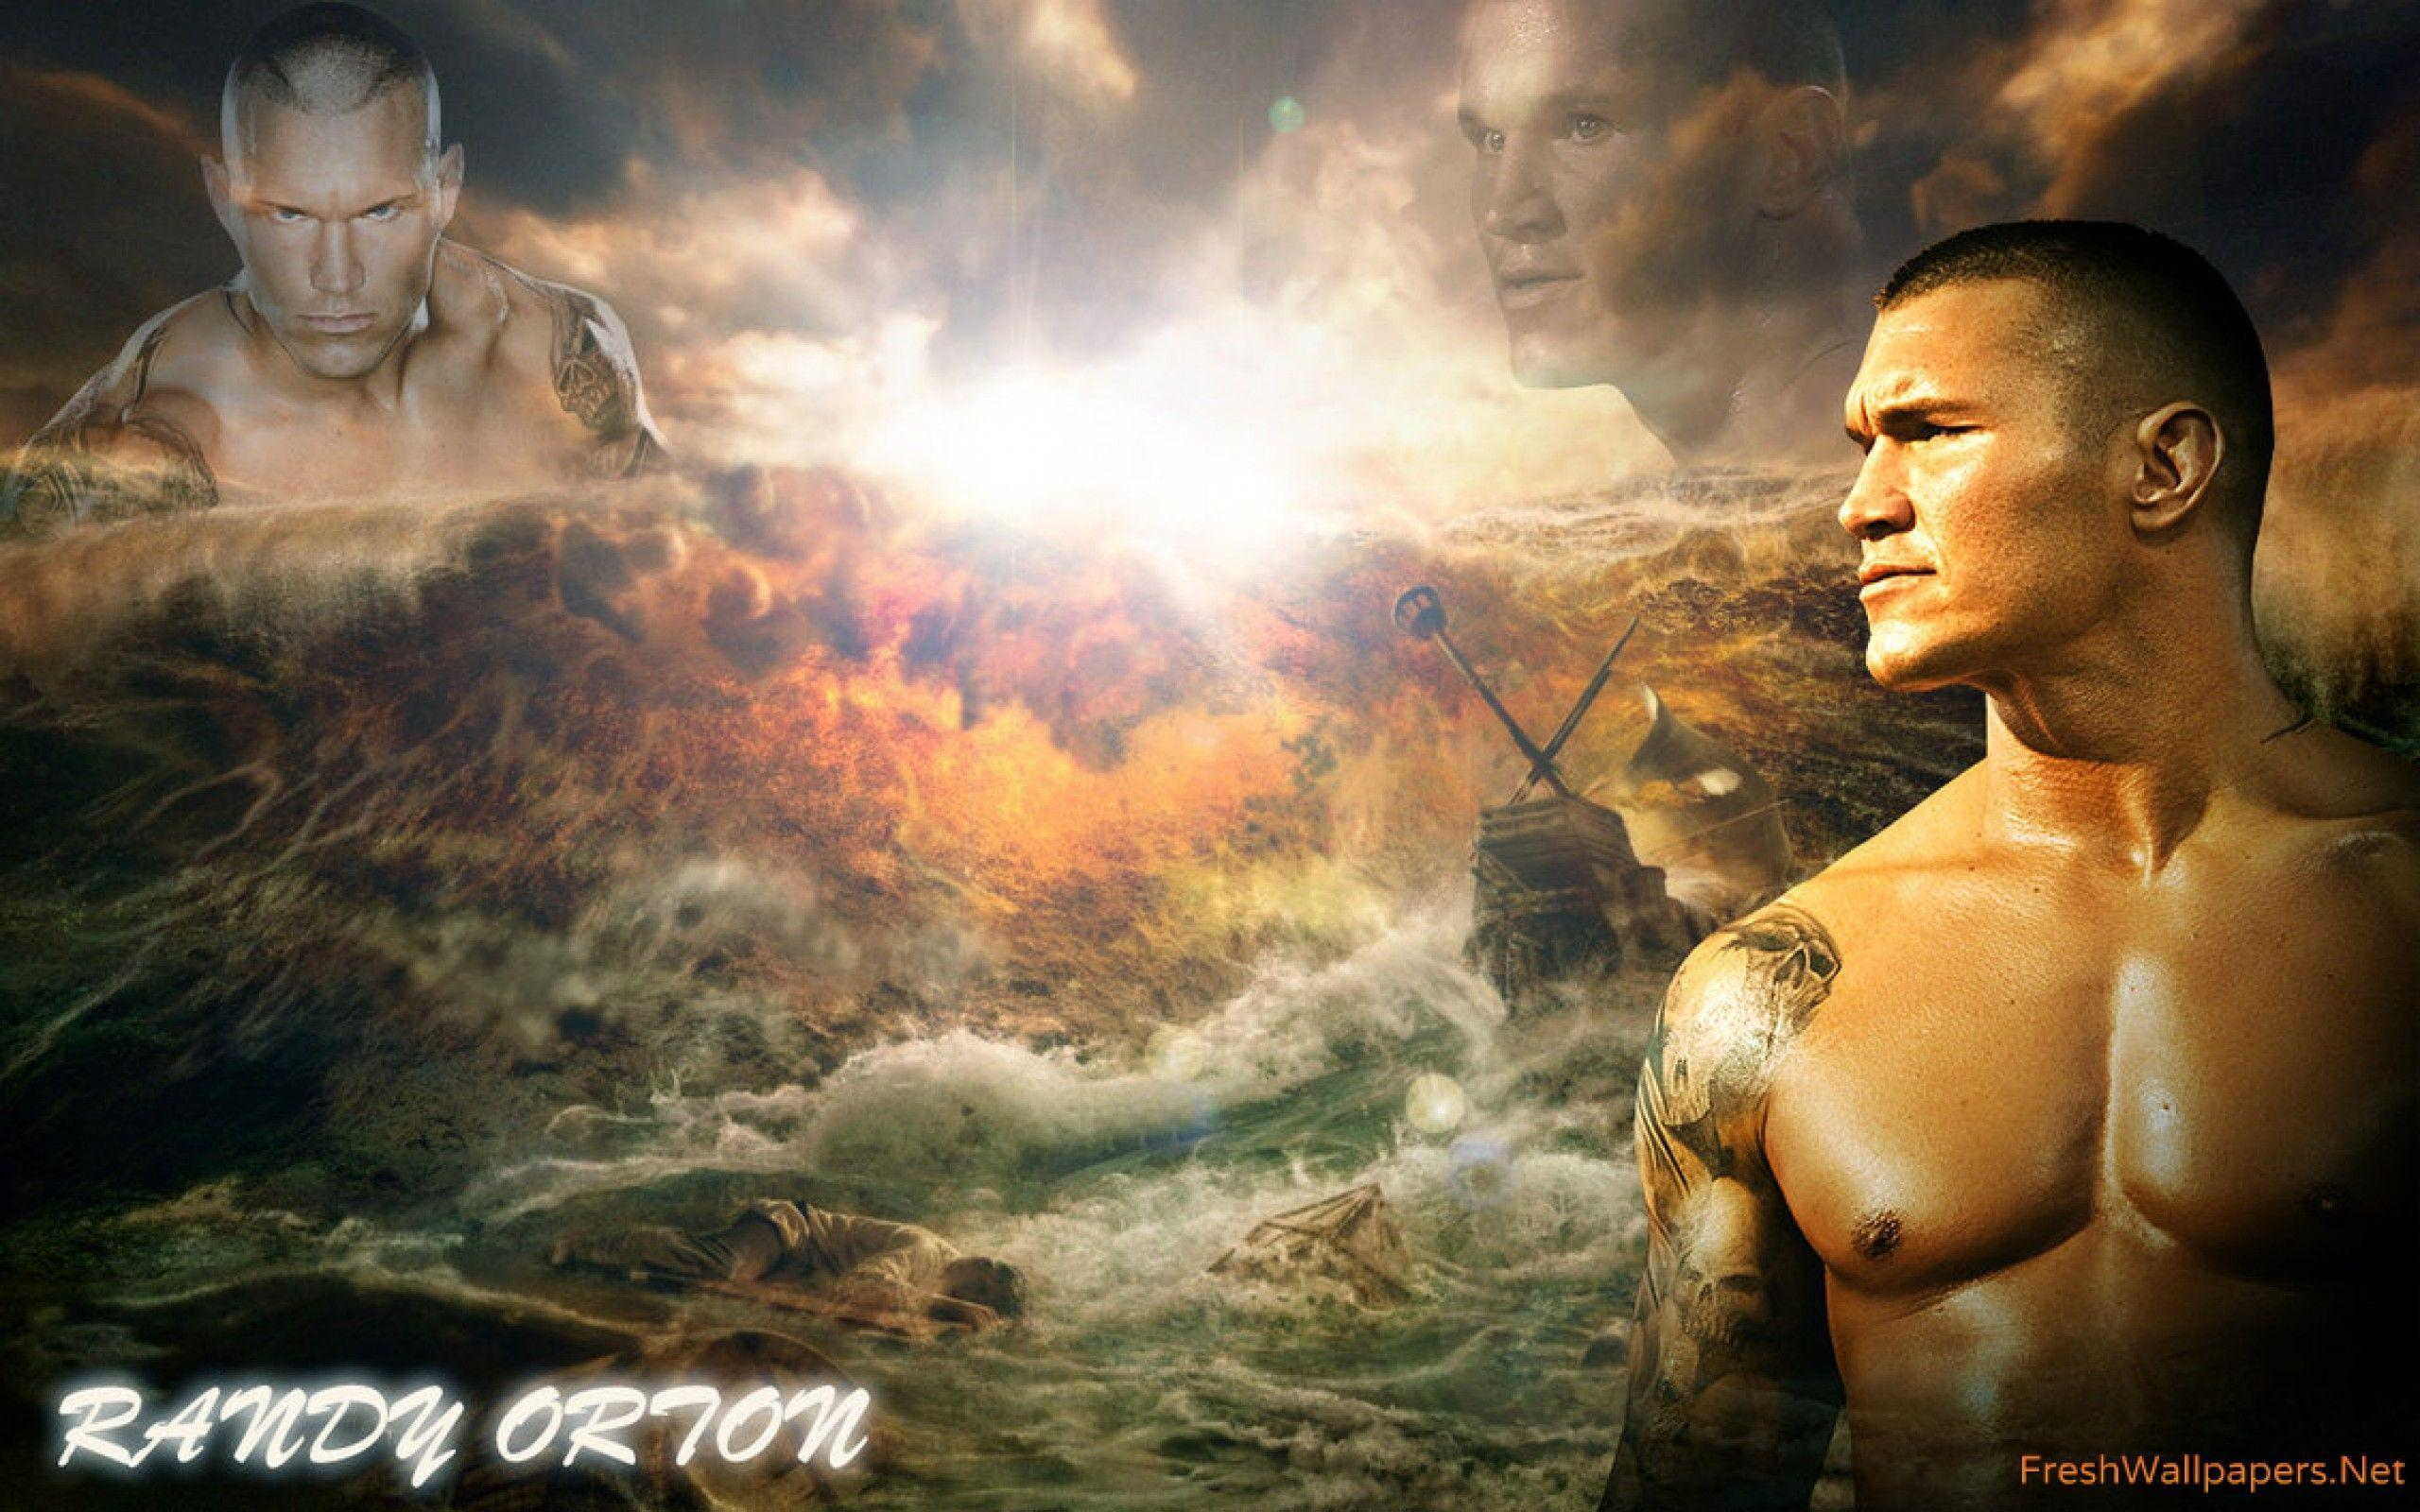 Randy Orton 2017 Wallpapers